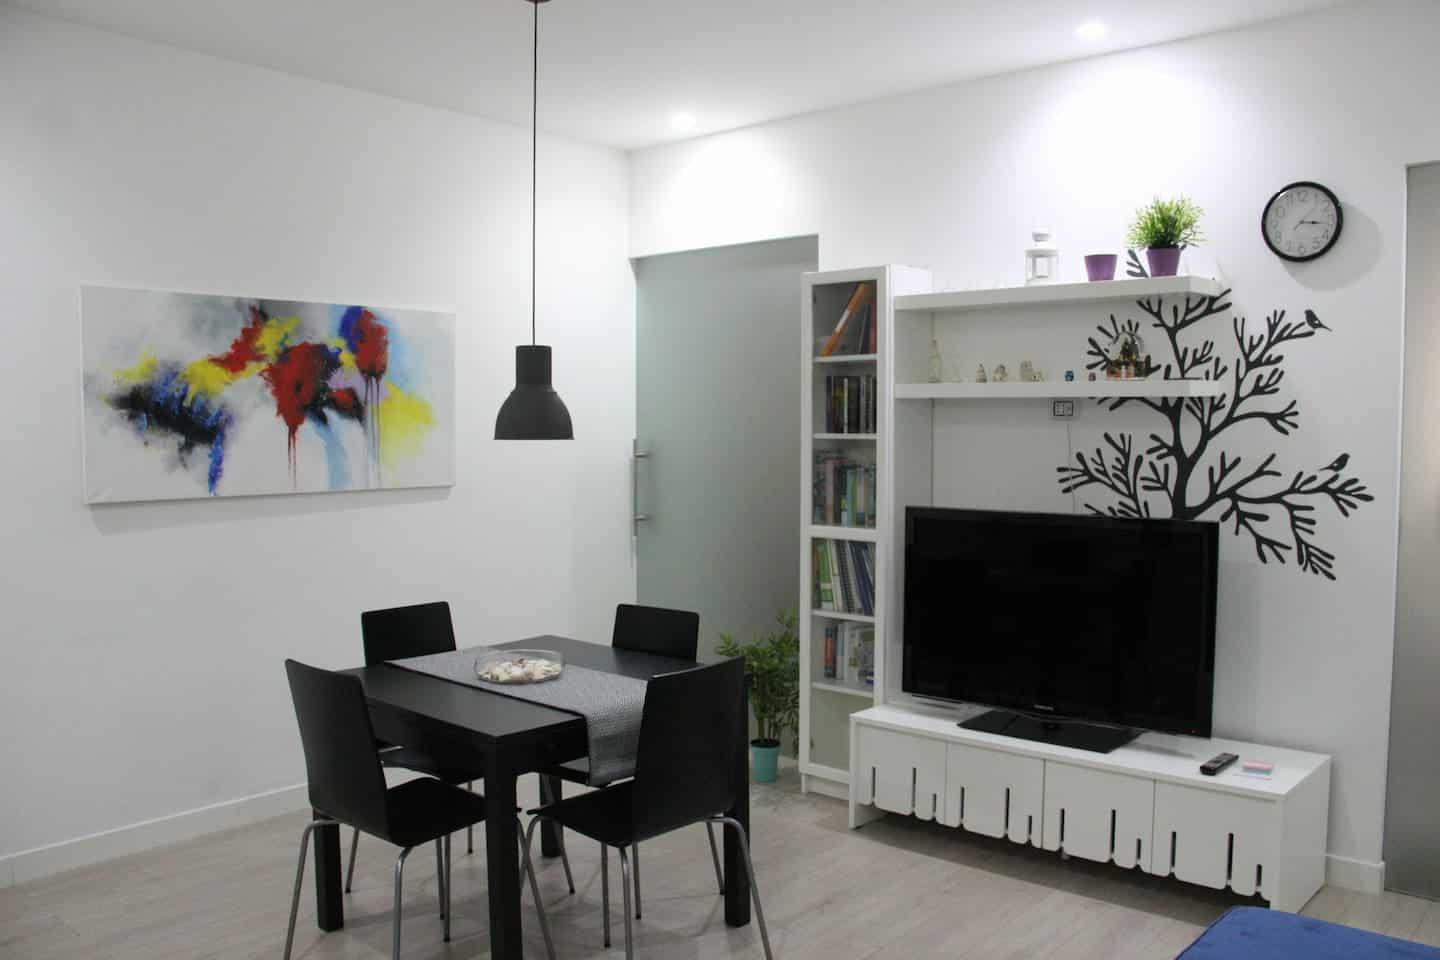 Image of Airbnb rental in Naples, Italy